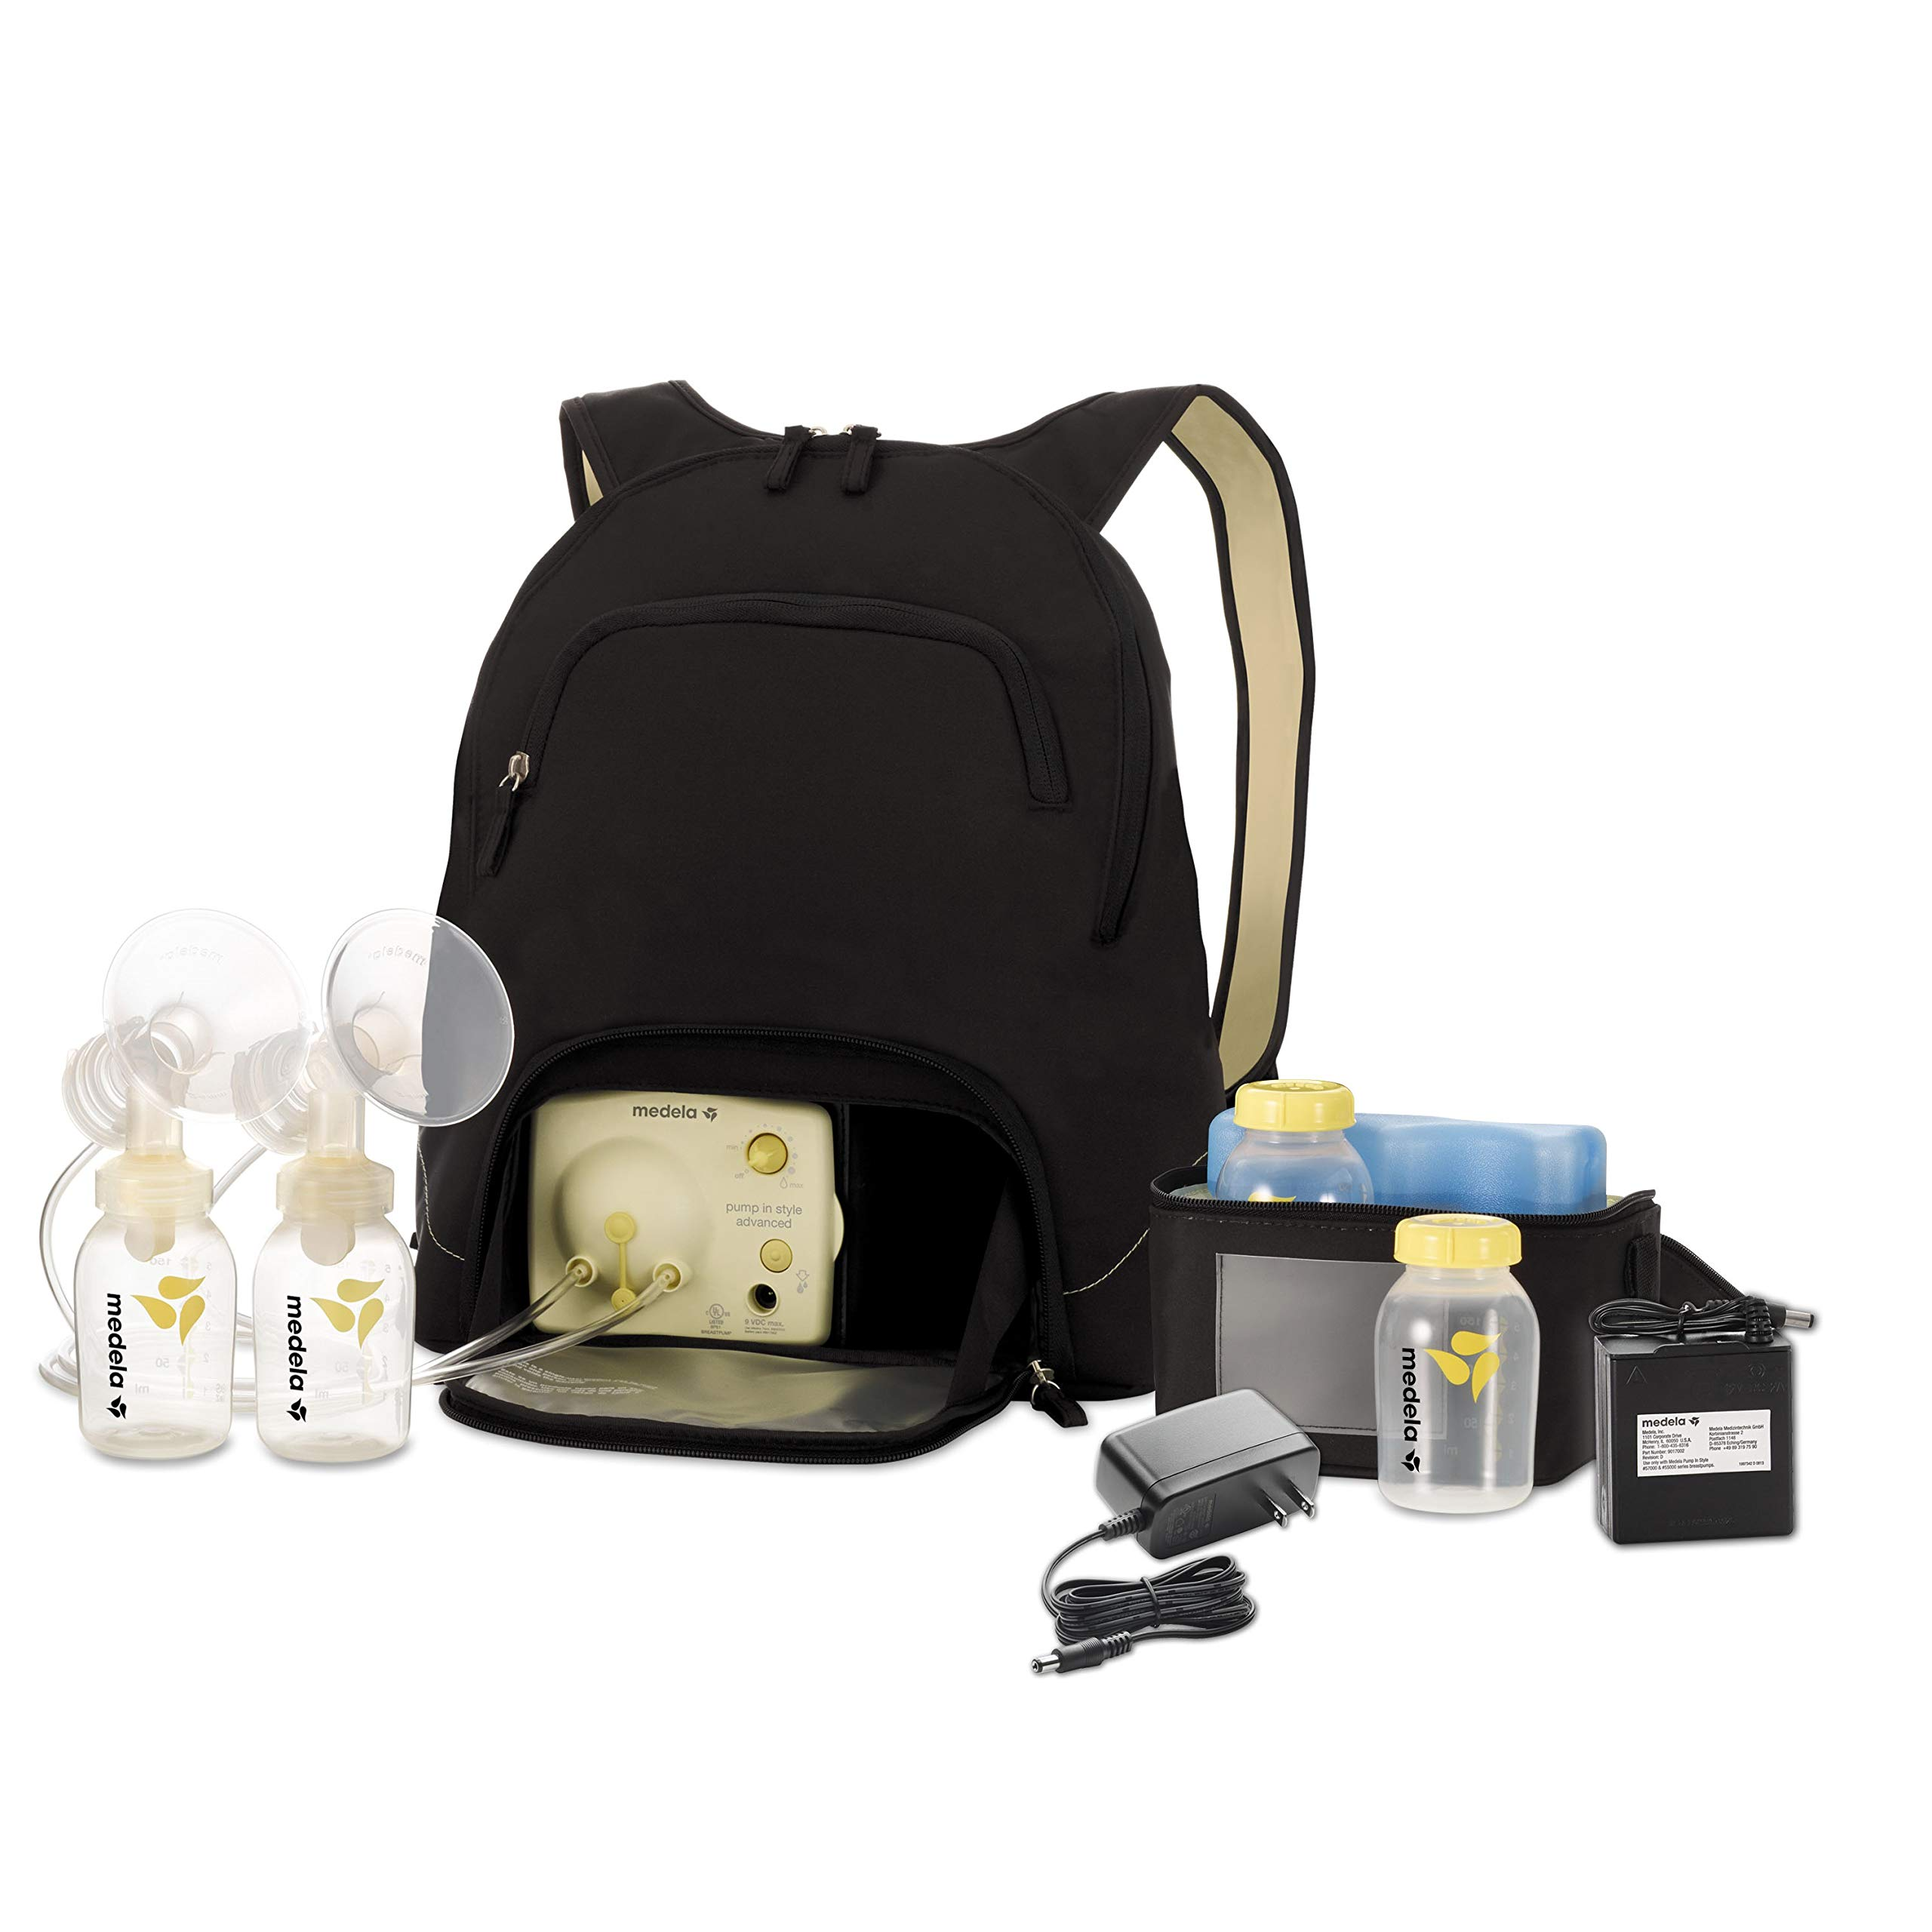 Medela Pump in Style Advanced Breast Pump with Backpack, Double Electric Breastpump, Portable Battery Pack, Adjustable Speed and Vacuum, Power Supply Adapter 110v - 220v by Medela